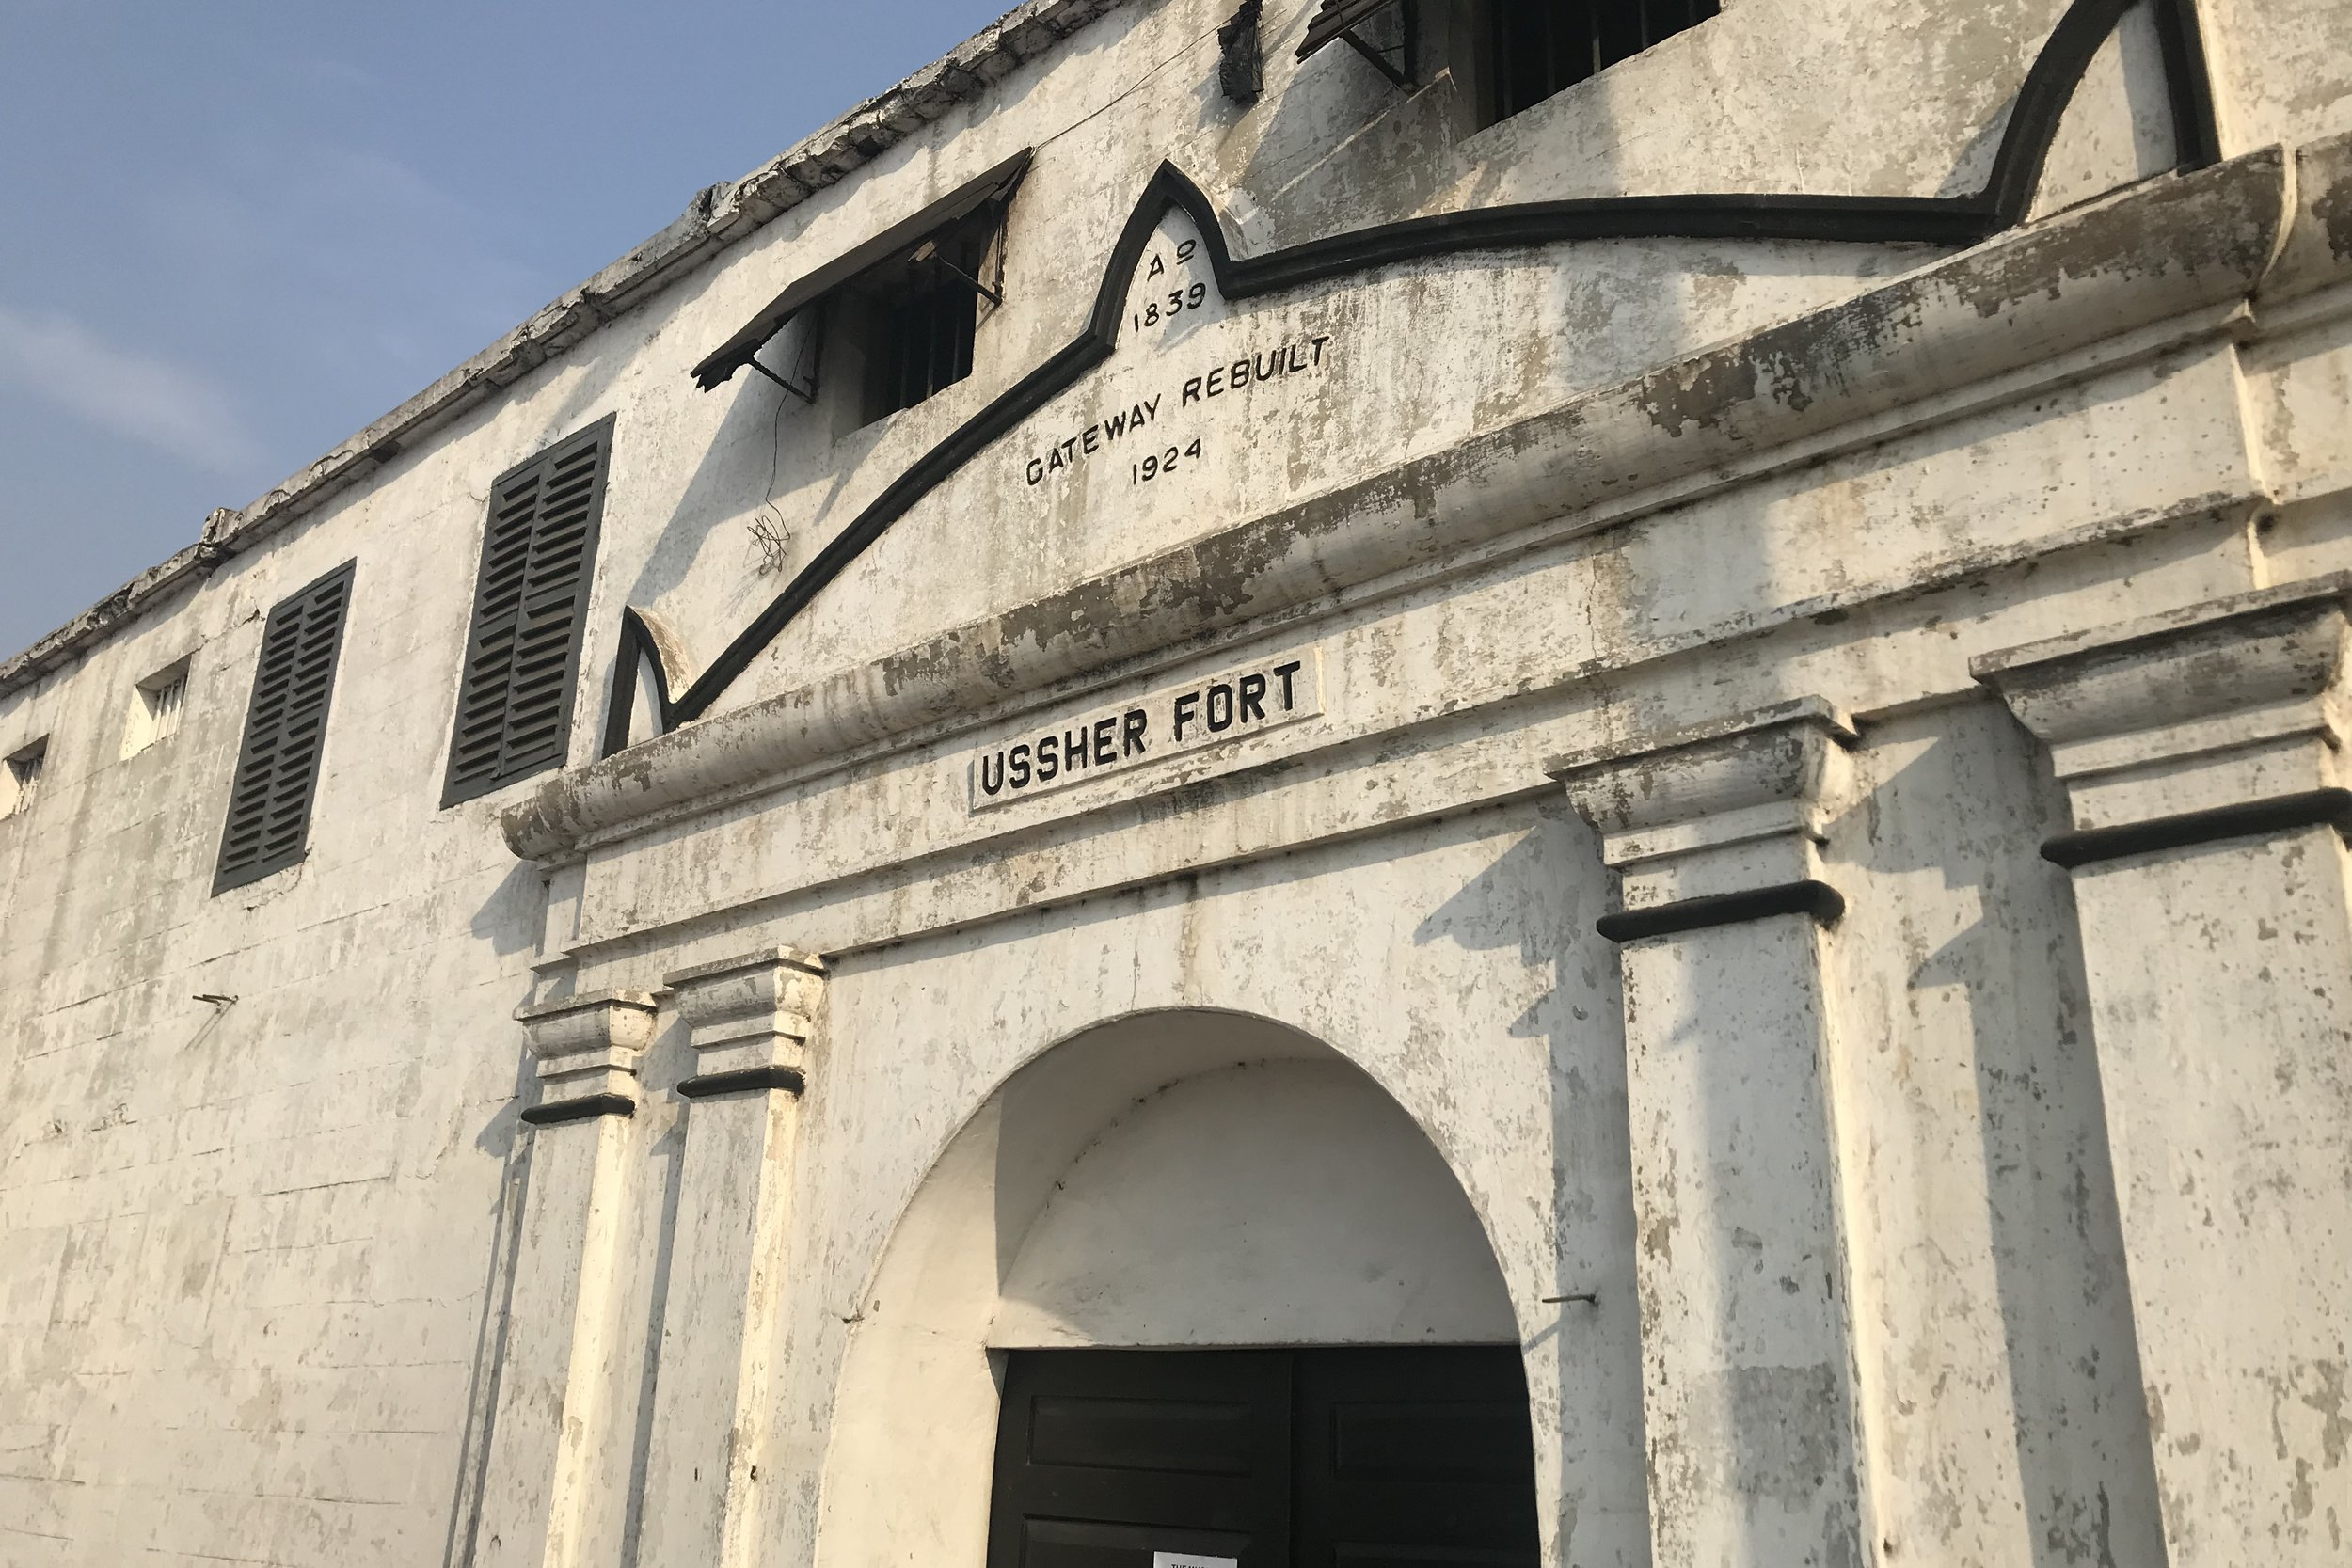 Ussher Fort